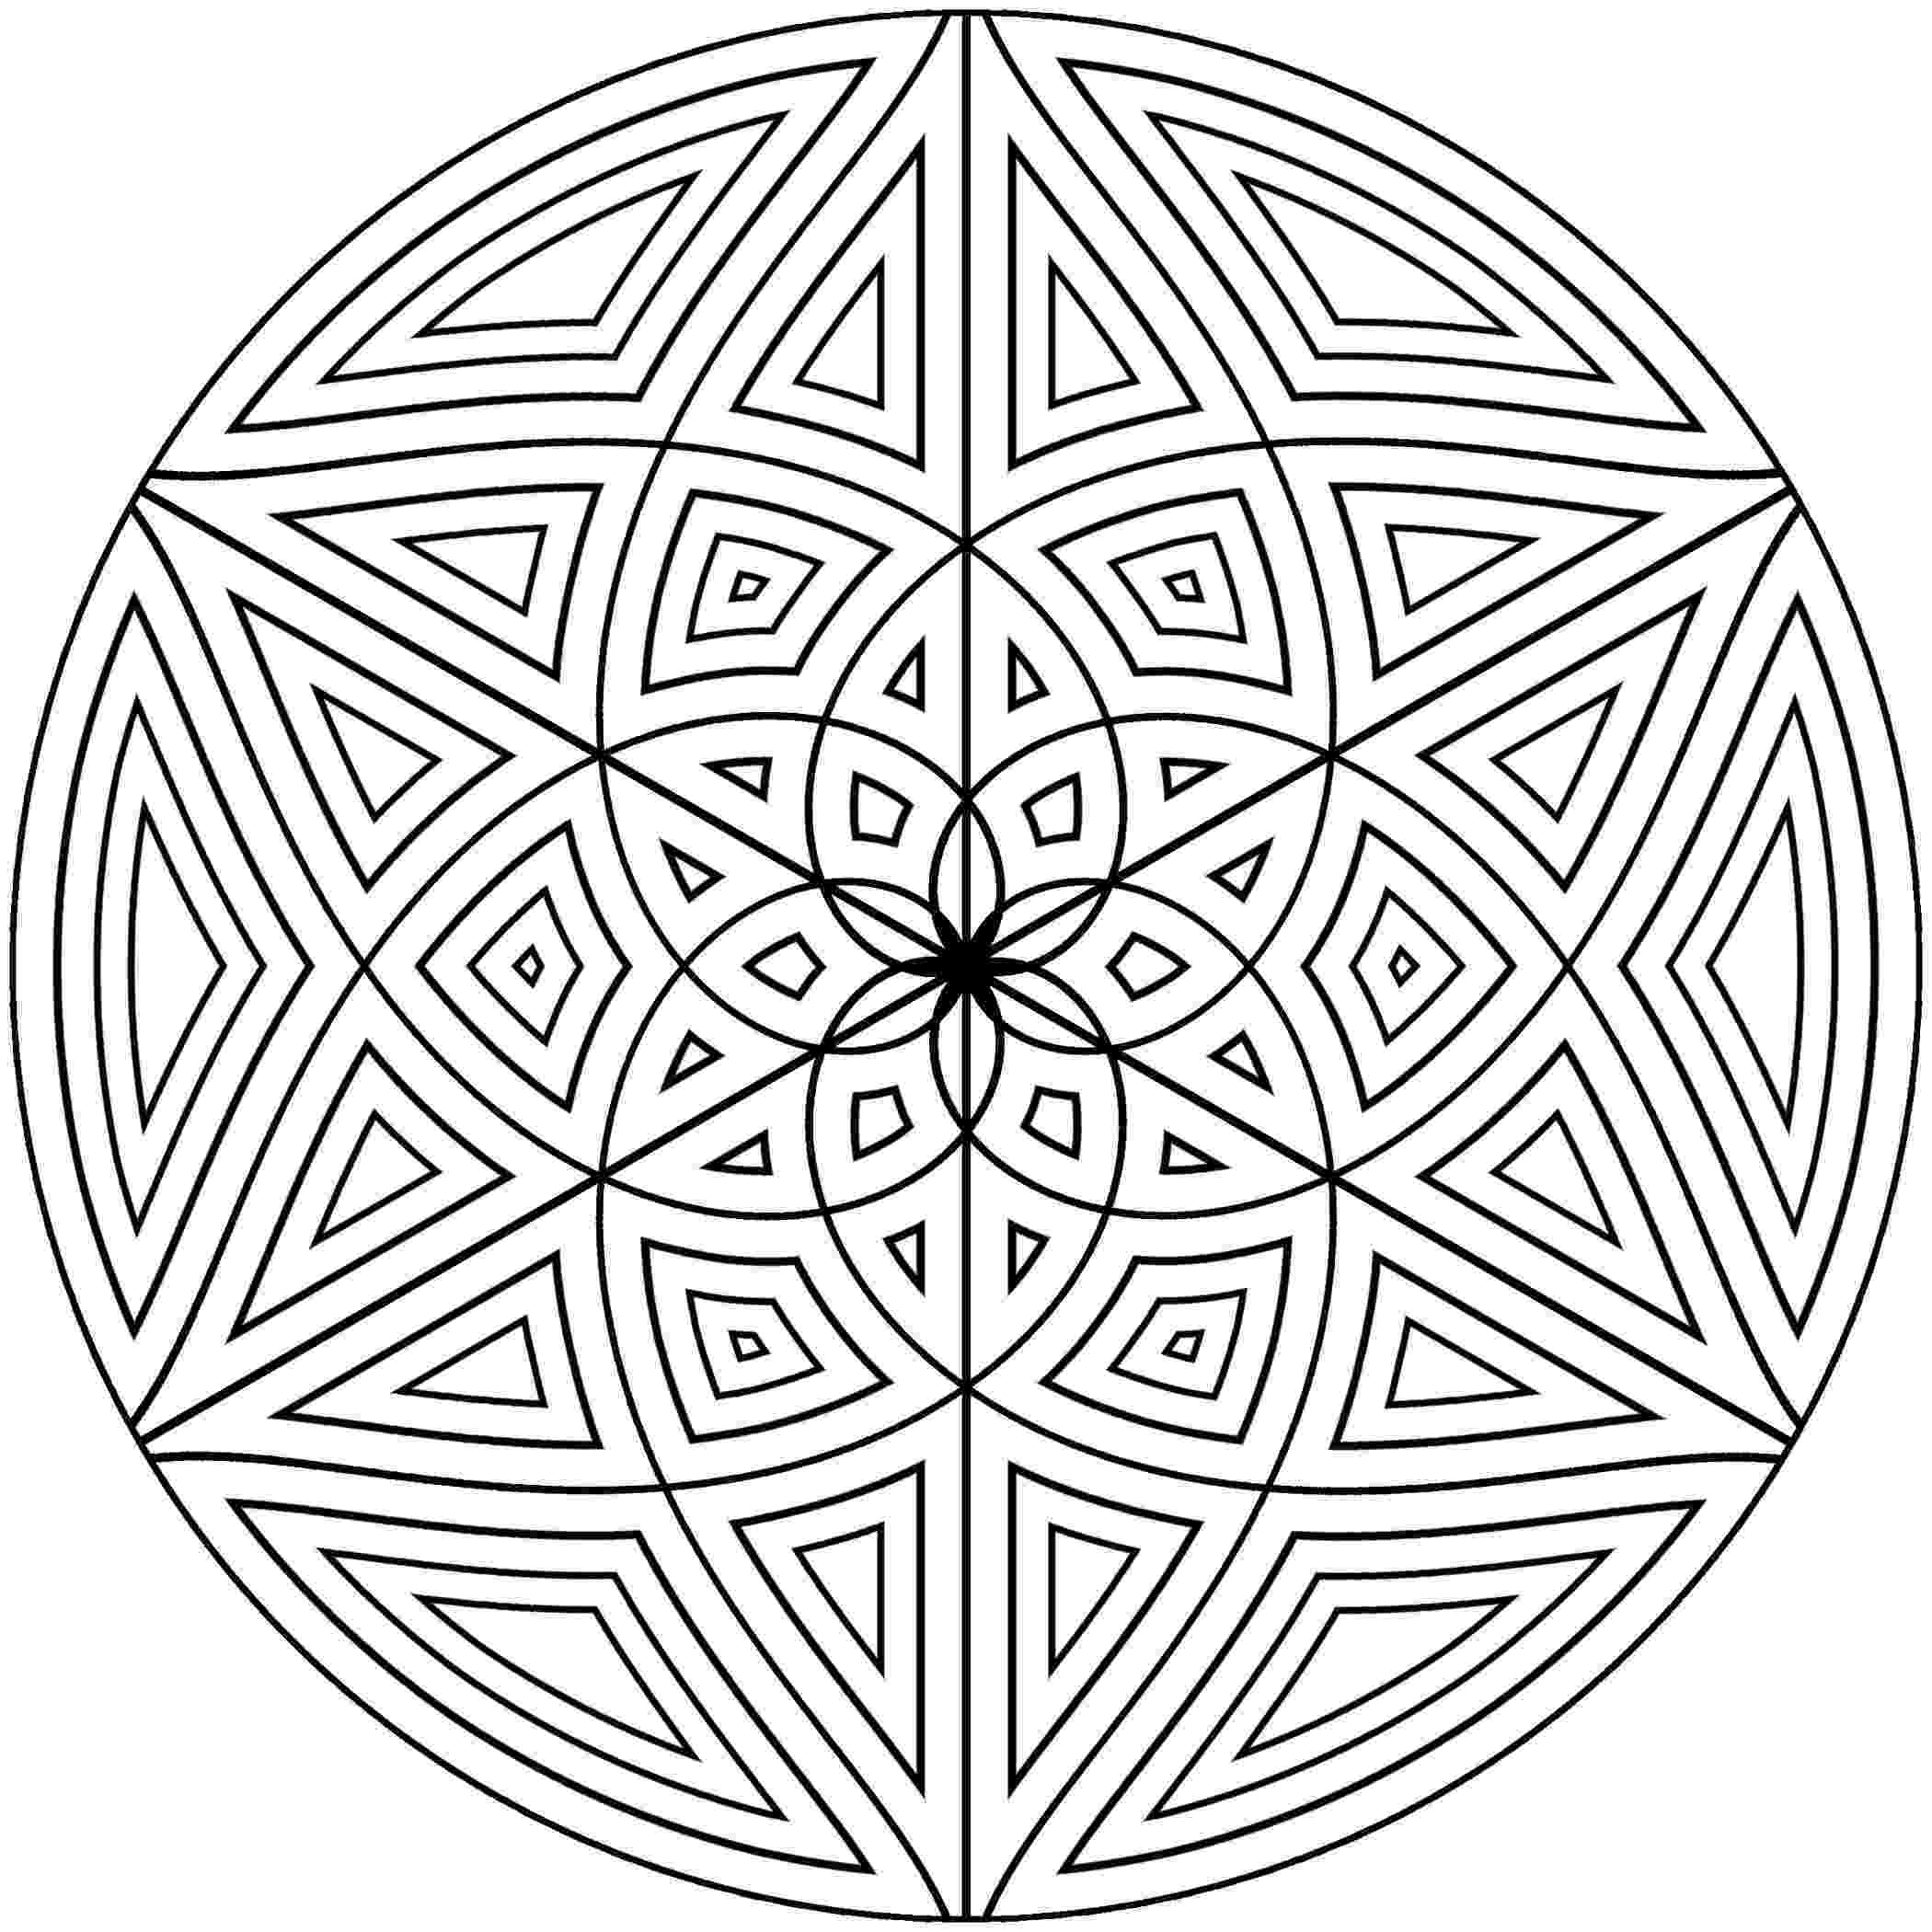 colouring pages of patterns coloring page world paisley flower pattern portrait of pages patterns colouring